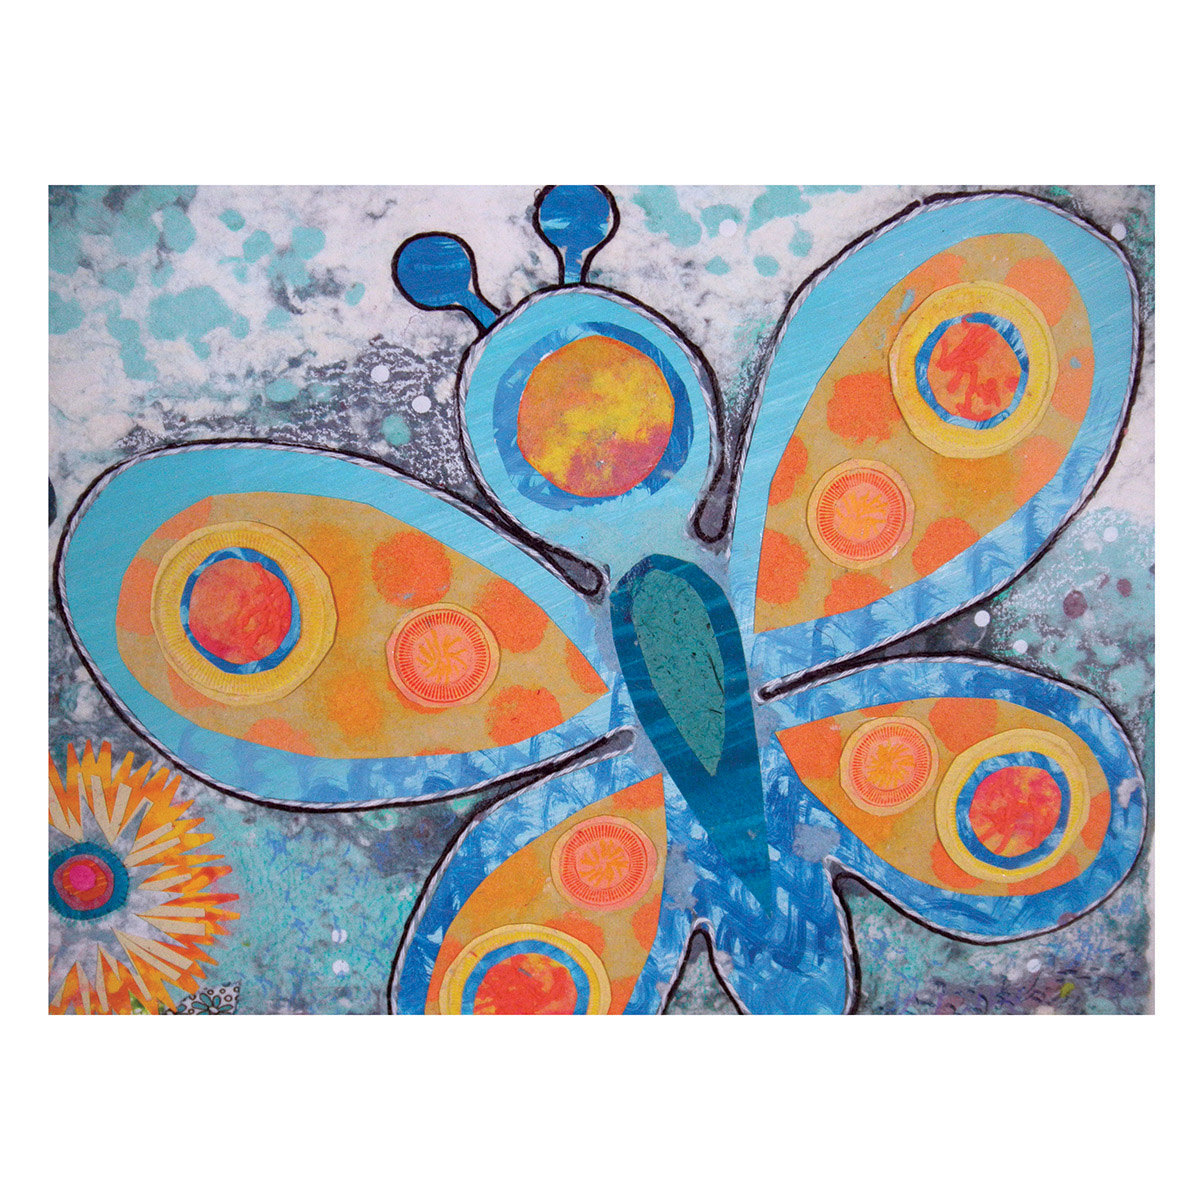 Butterfly Circles of Life - 1a